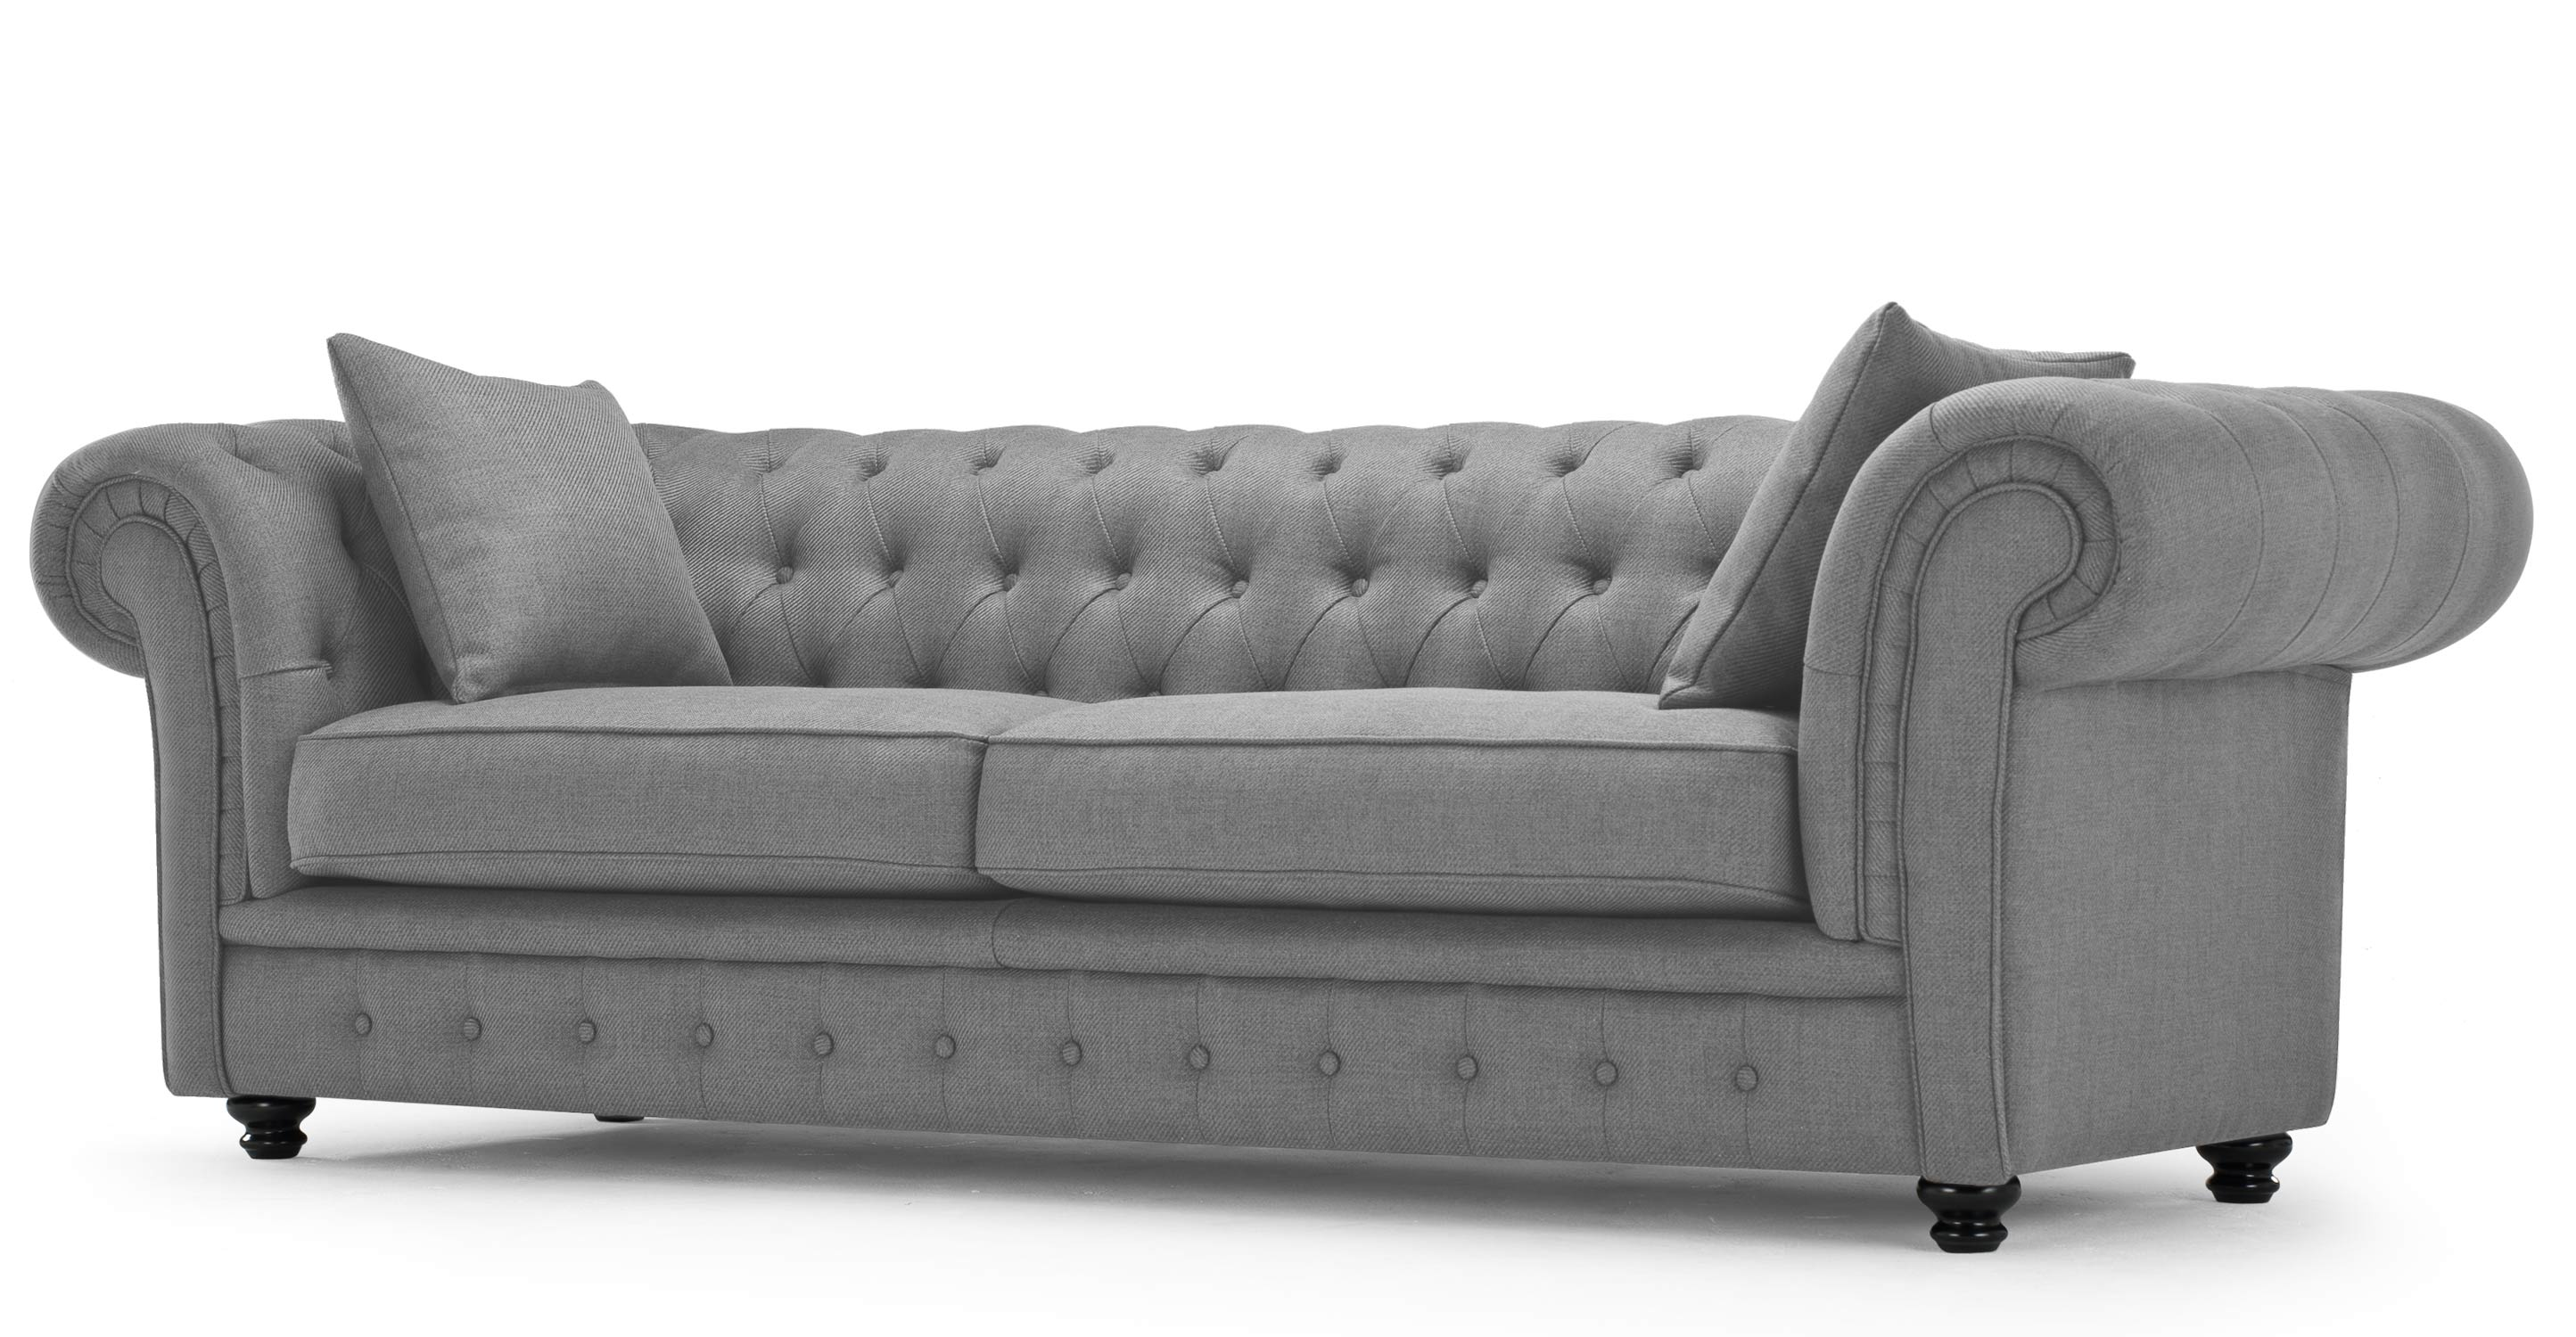 Branagh 3 Seater Grey Chesterfield Sofa made com